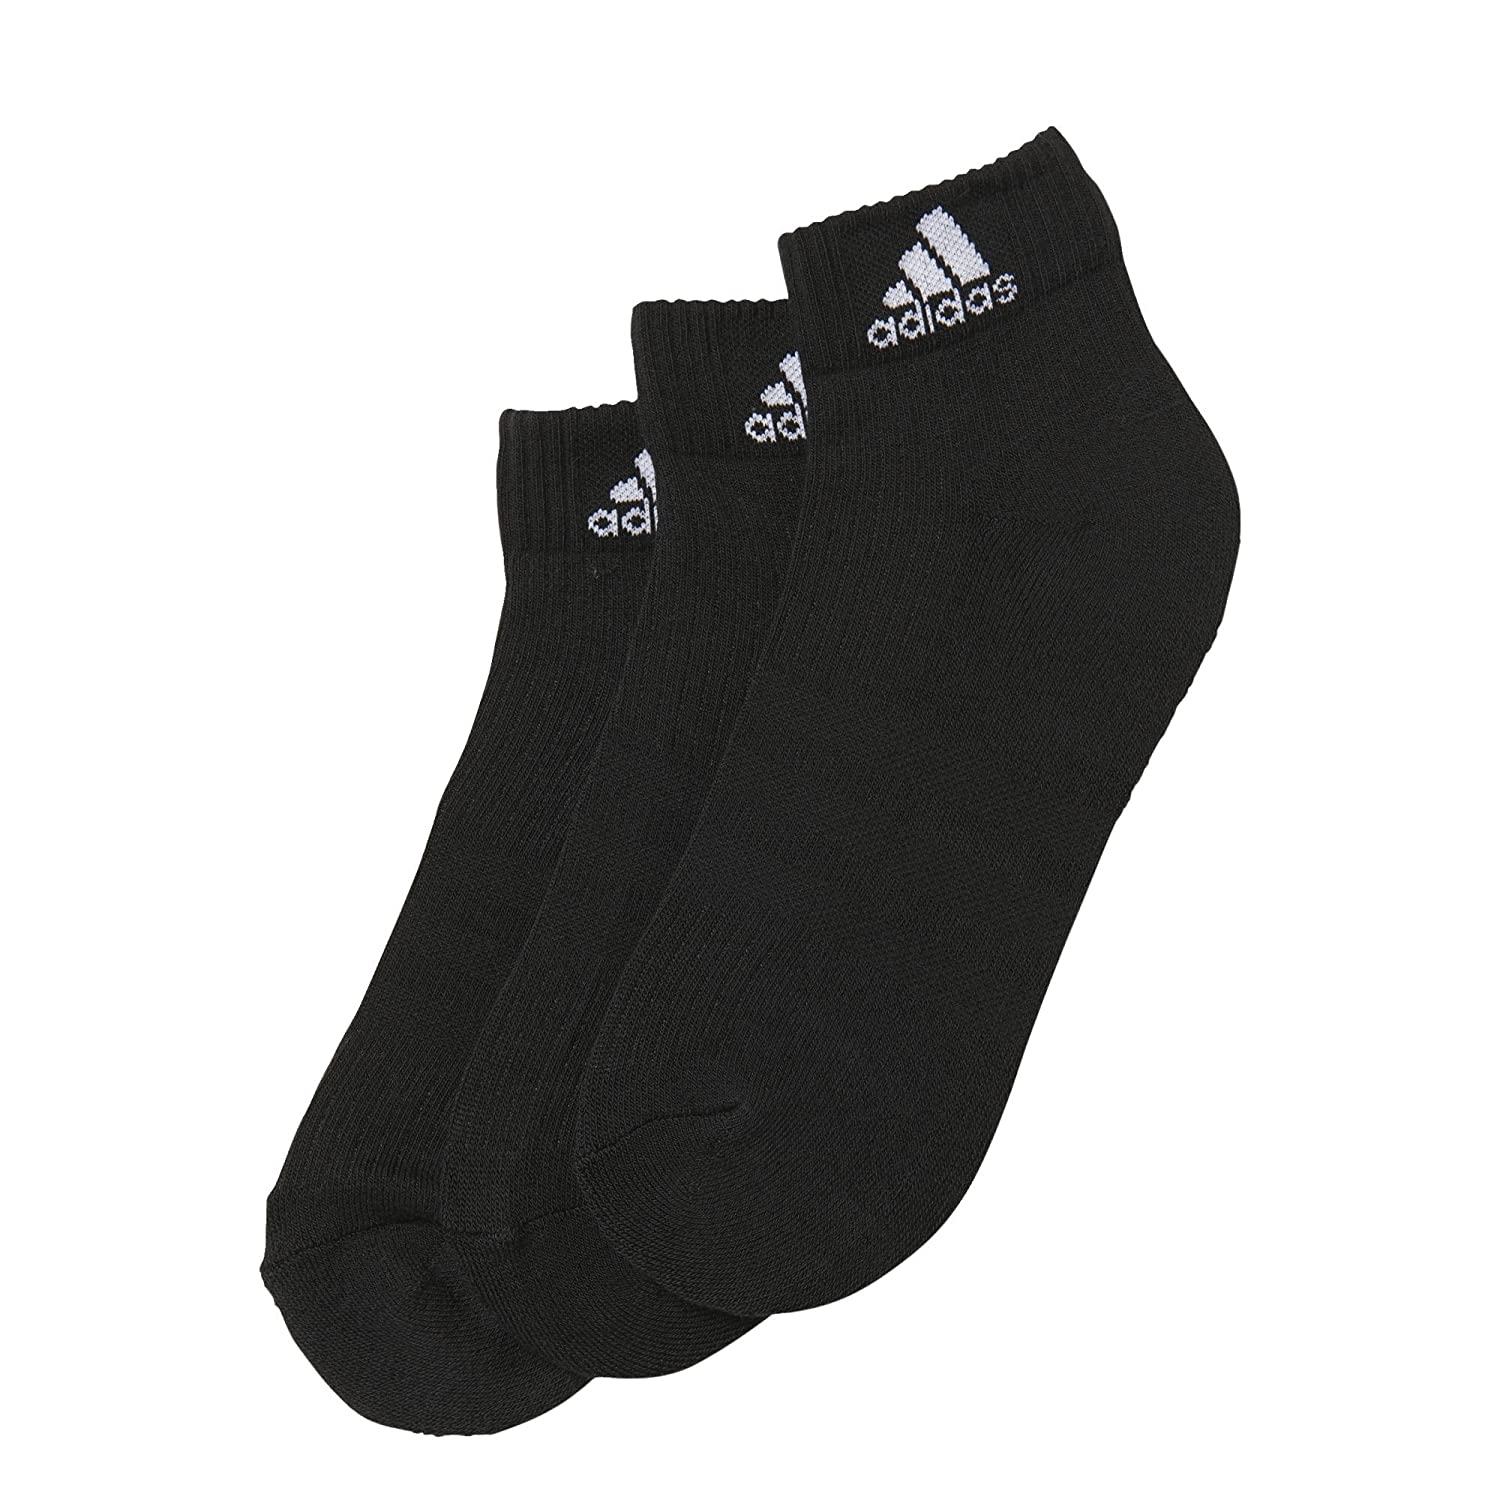 adidas 3S - Calze Performance Ankle C, 3 paia AA5493dshsytys